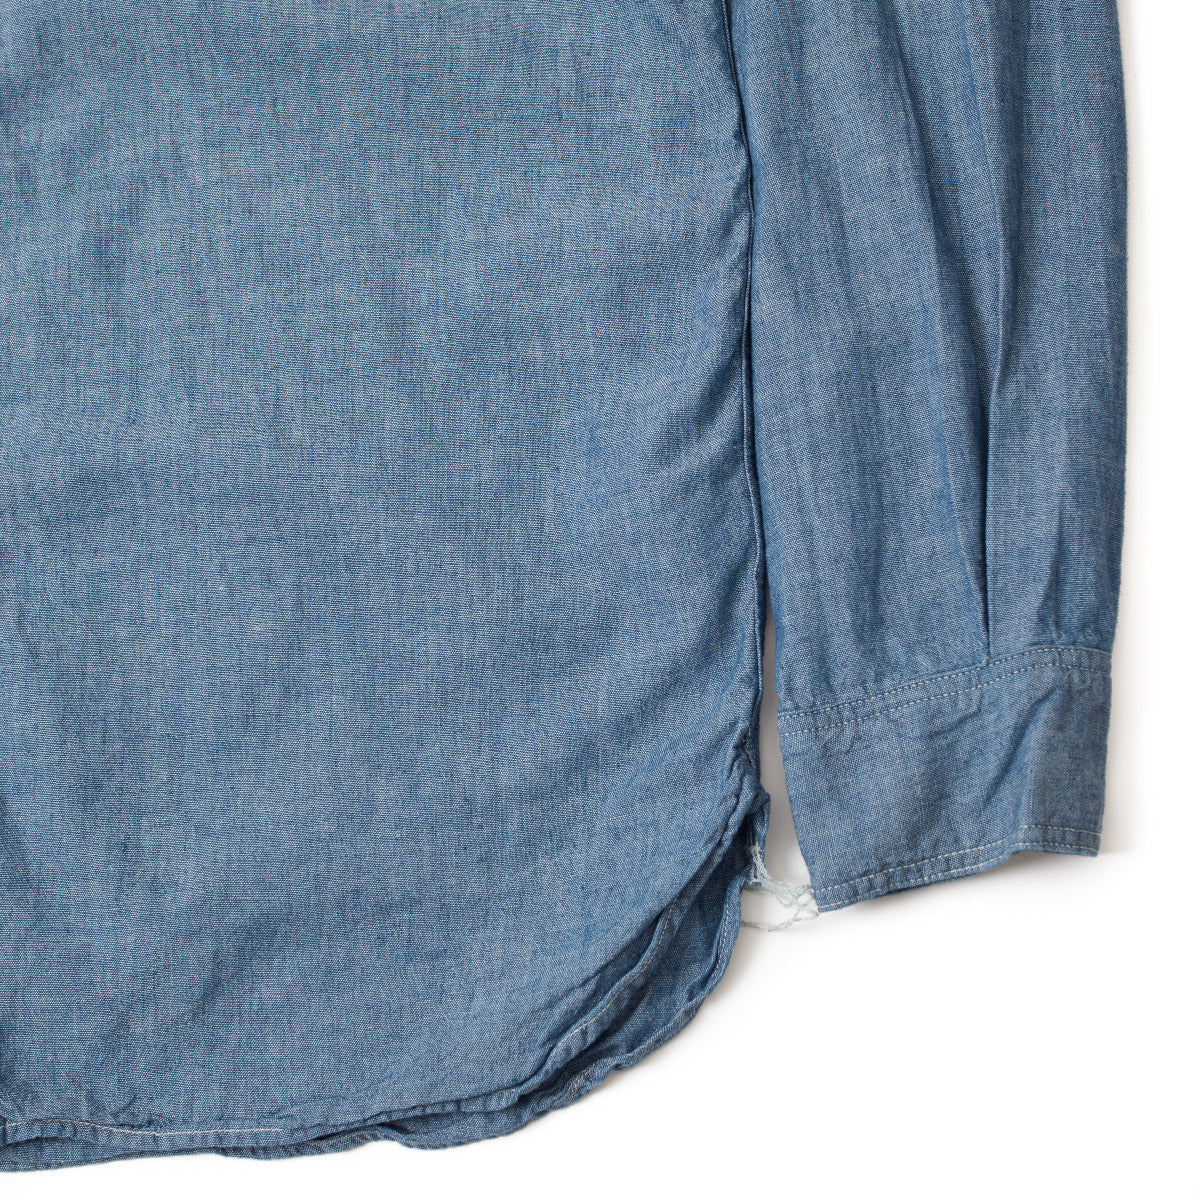 Orslow Chambray Work Shirt